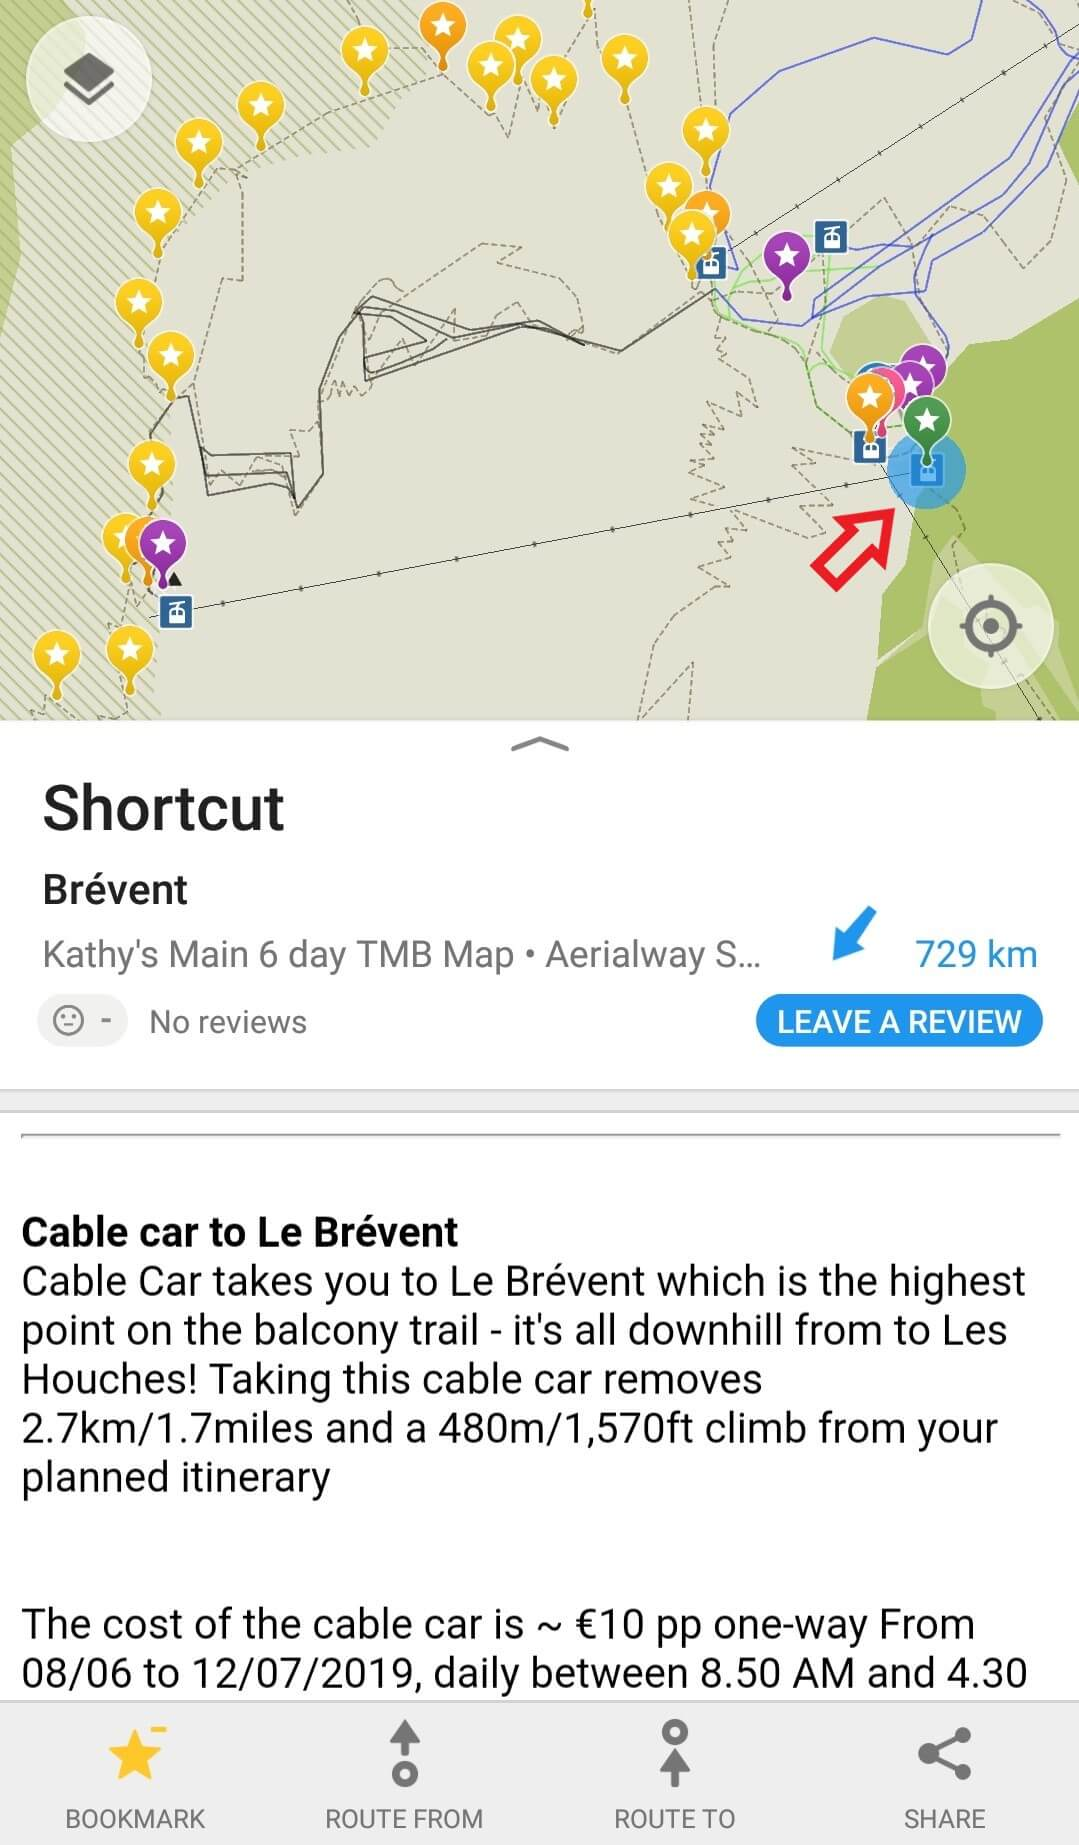 Shortcut locations are shown in green and information is provided on schedule and prices